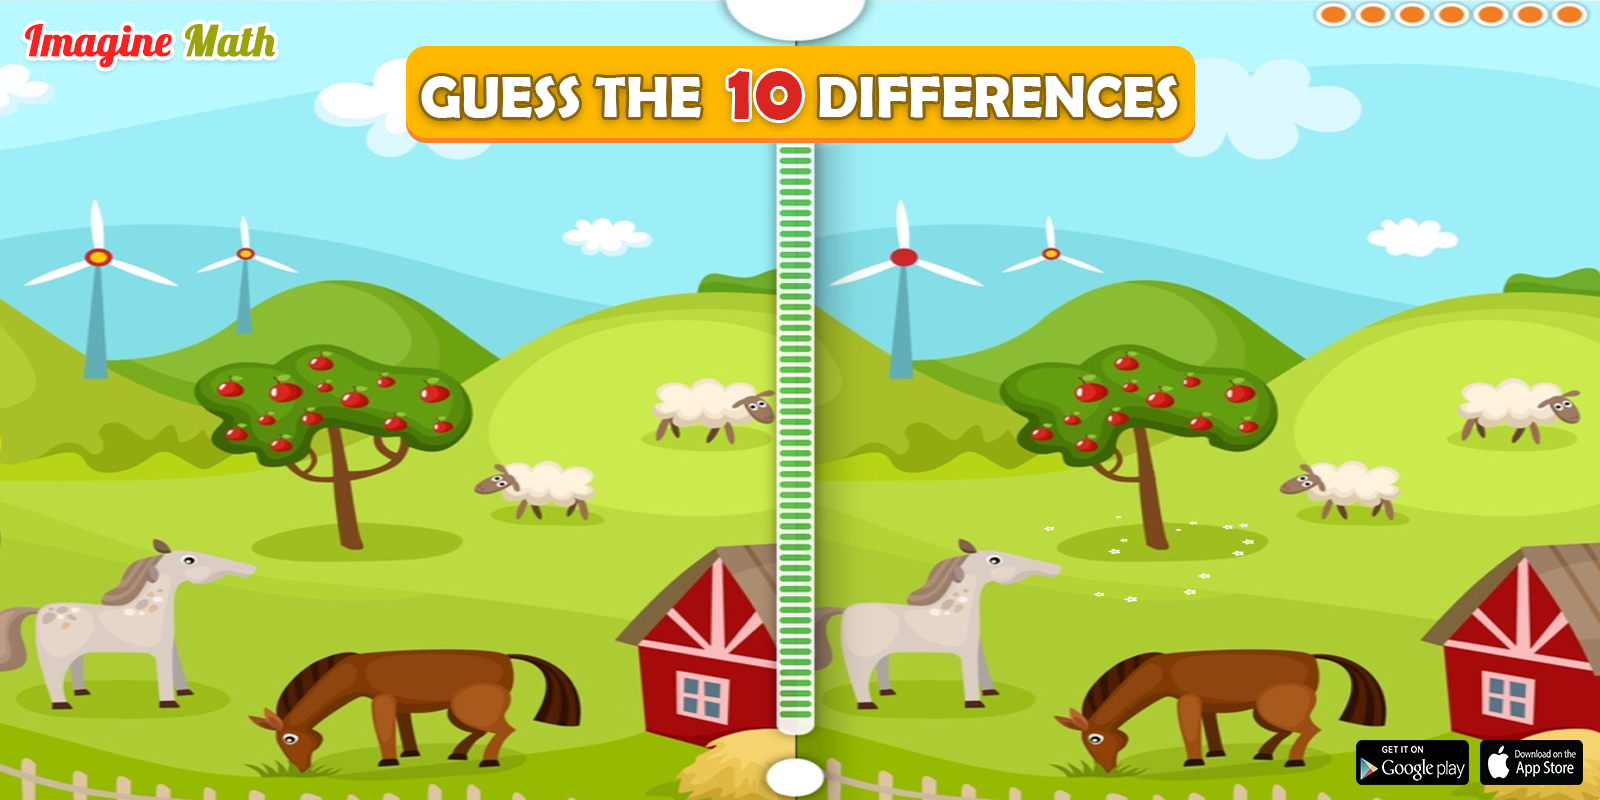 Find 10 Differences Between Two Pictures Imaginemath